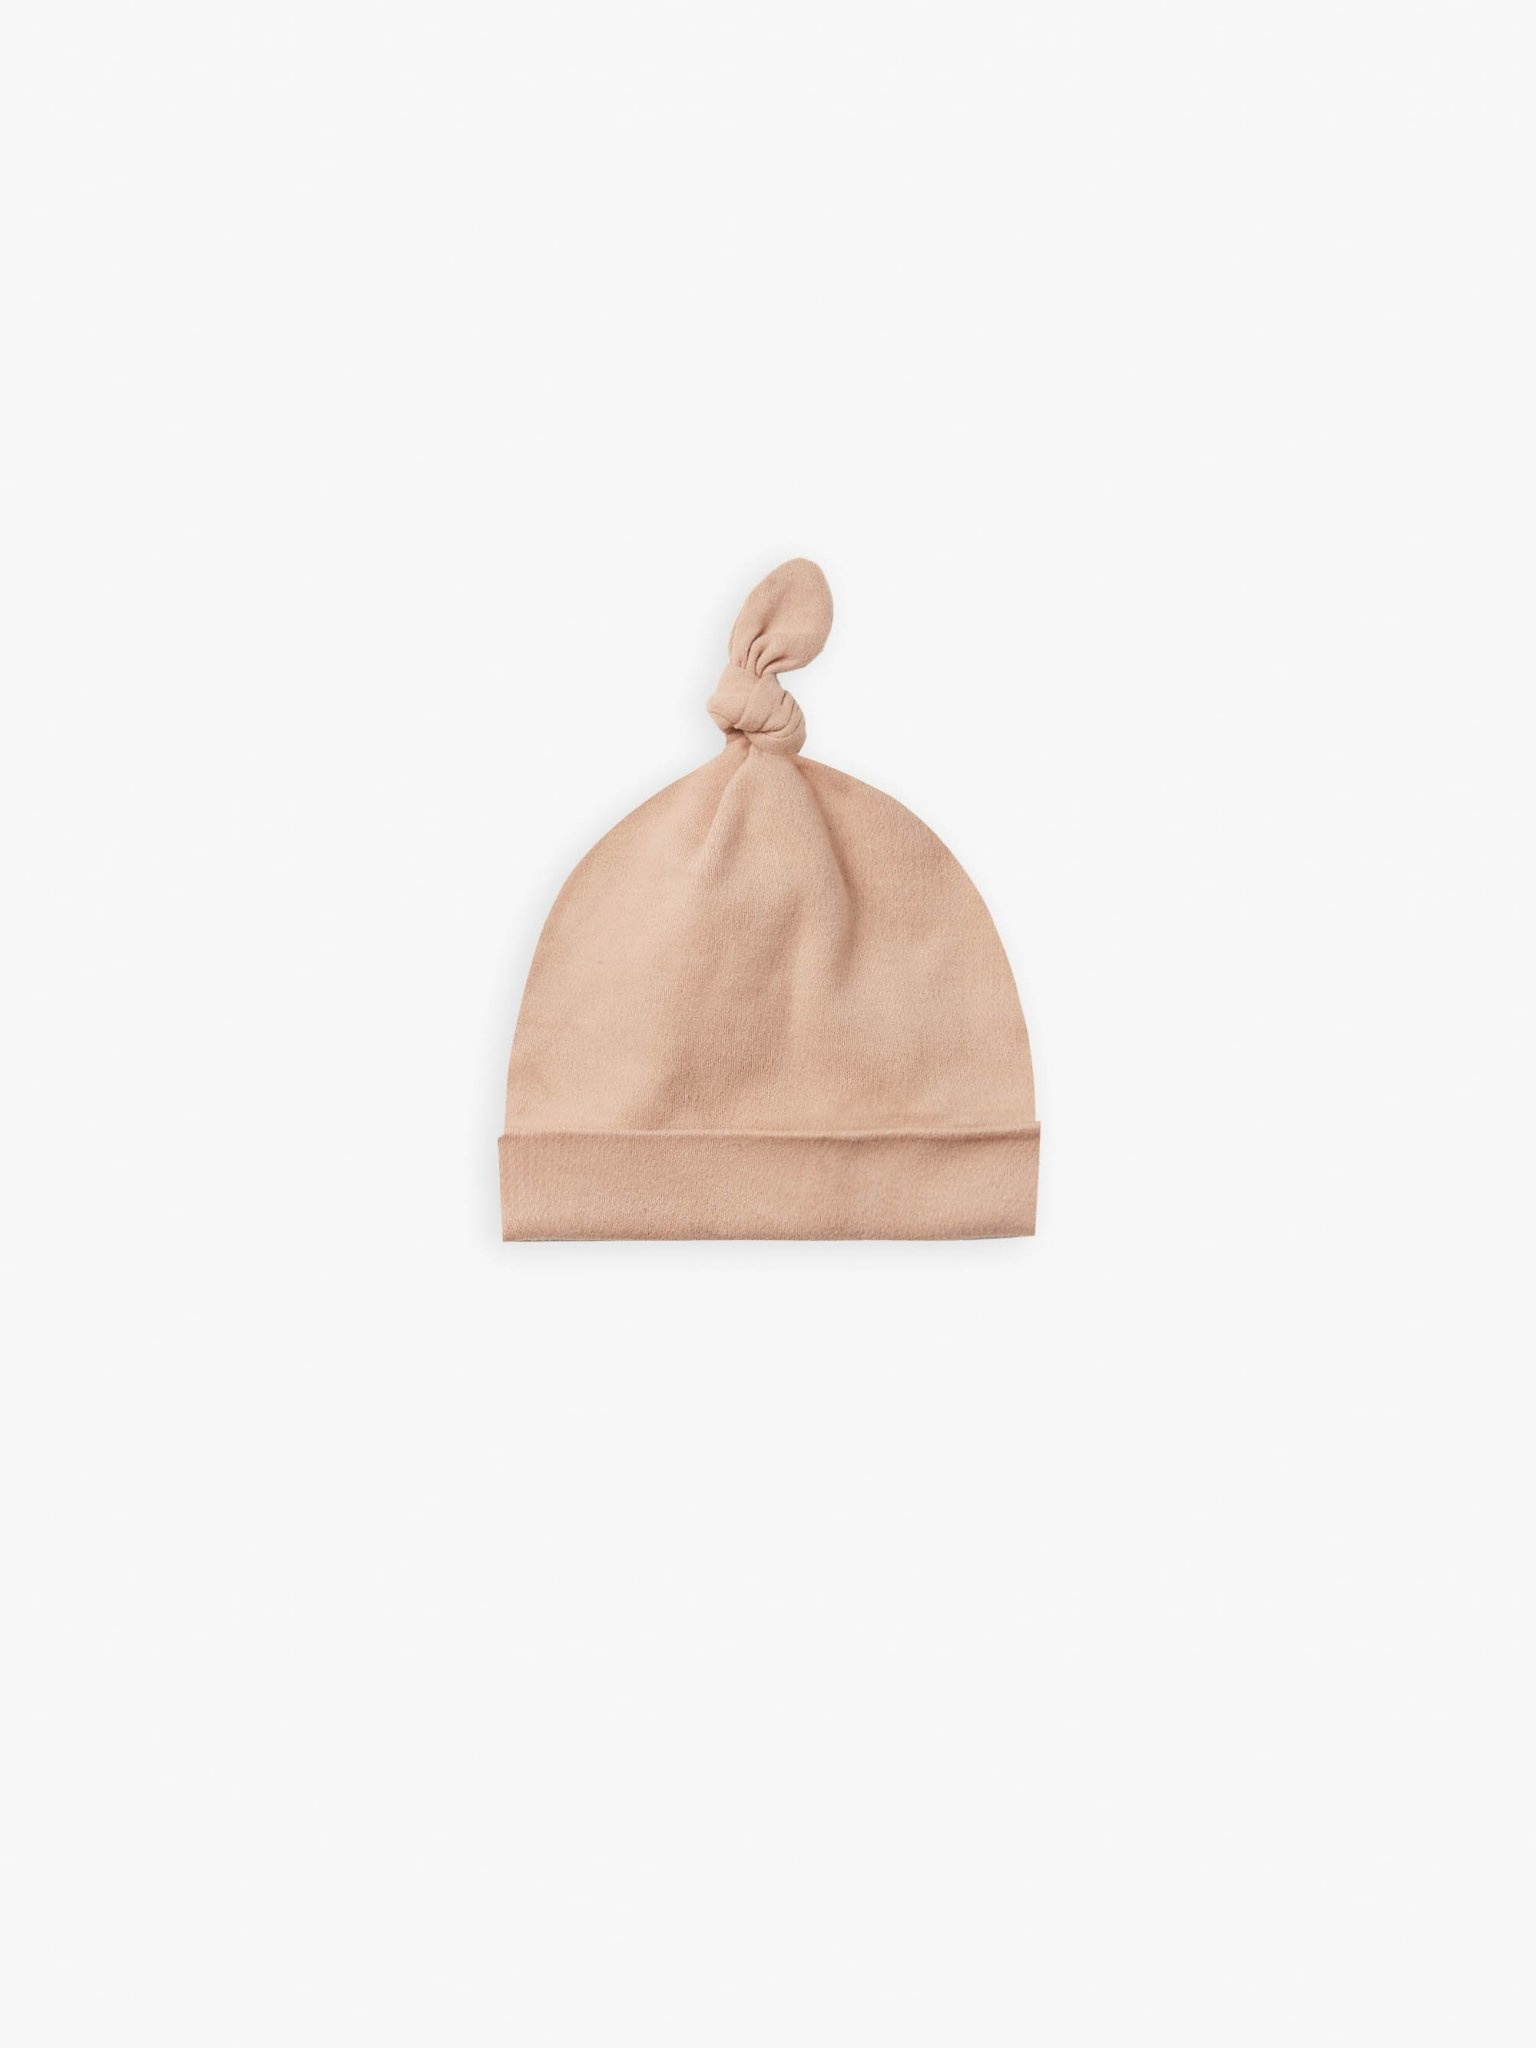 Quincy Mae Quincy Mae | Knotted Hat Petal | 0-6 Mos